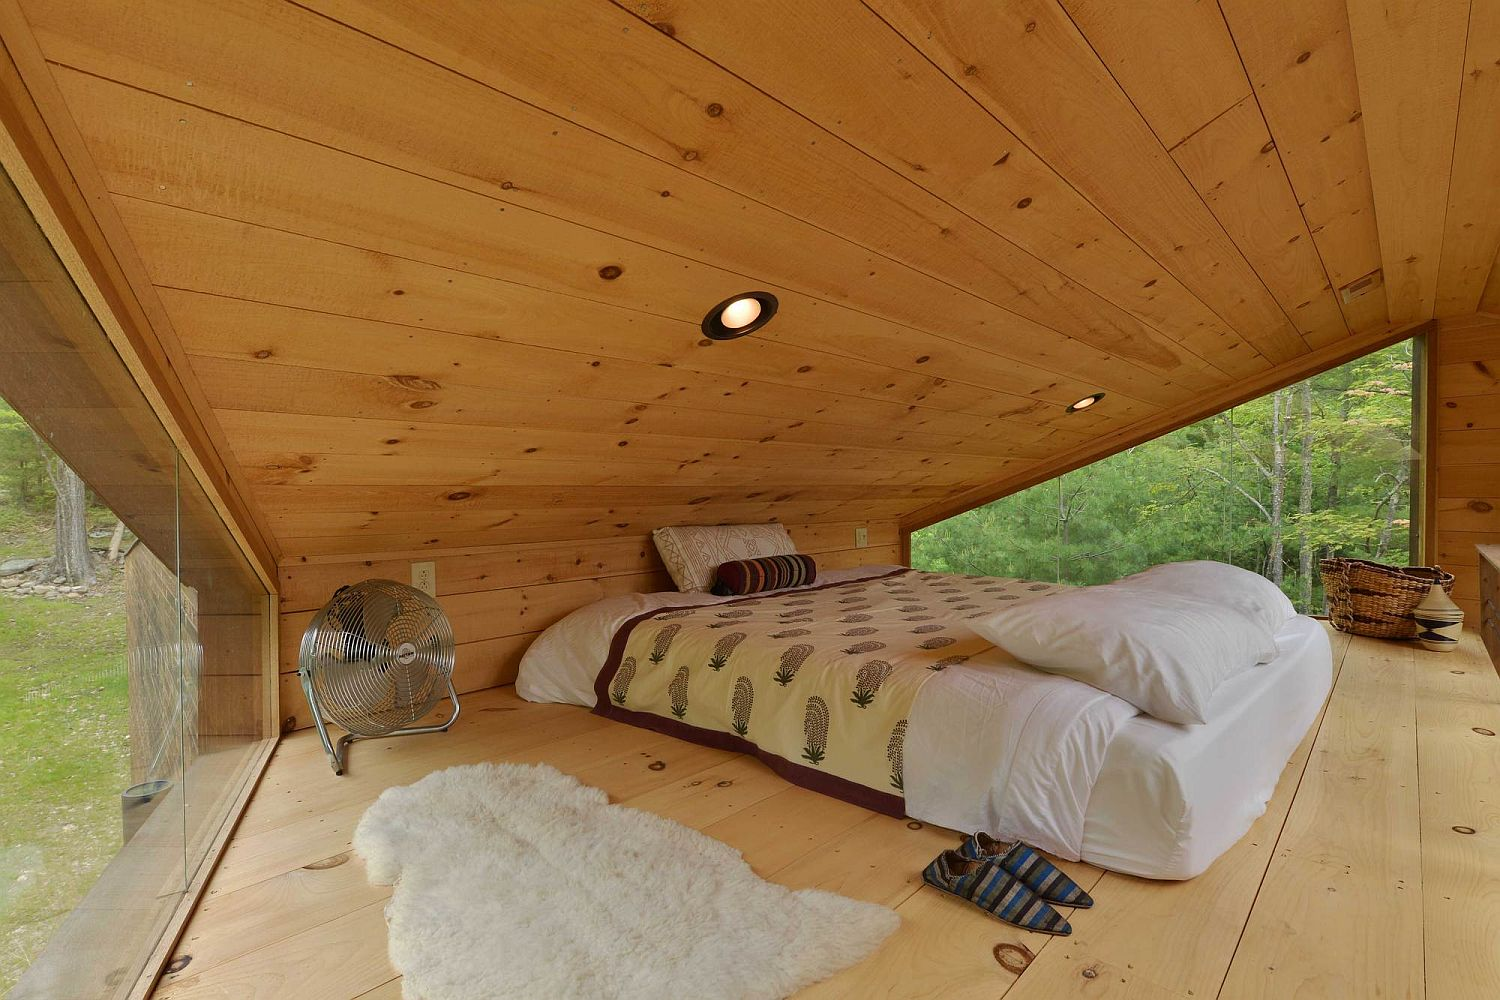 Cozy and minimal loft level bedroom of the treehouse